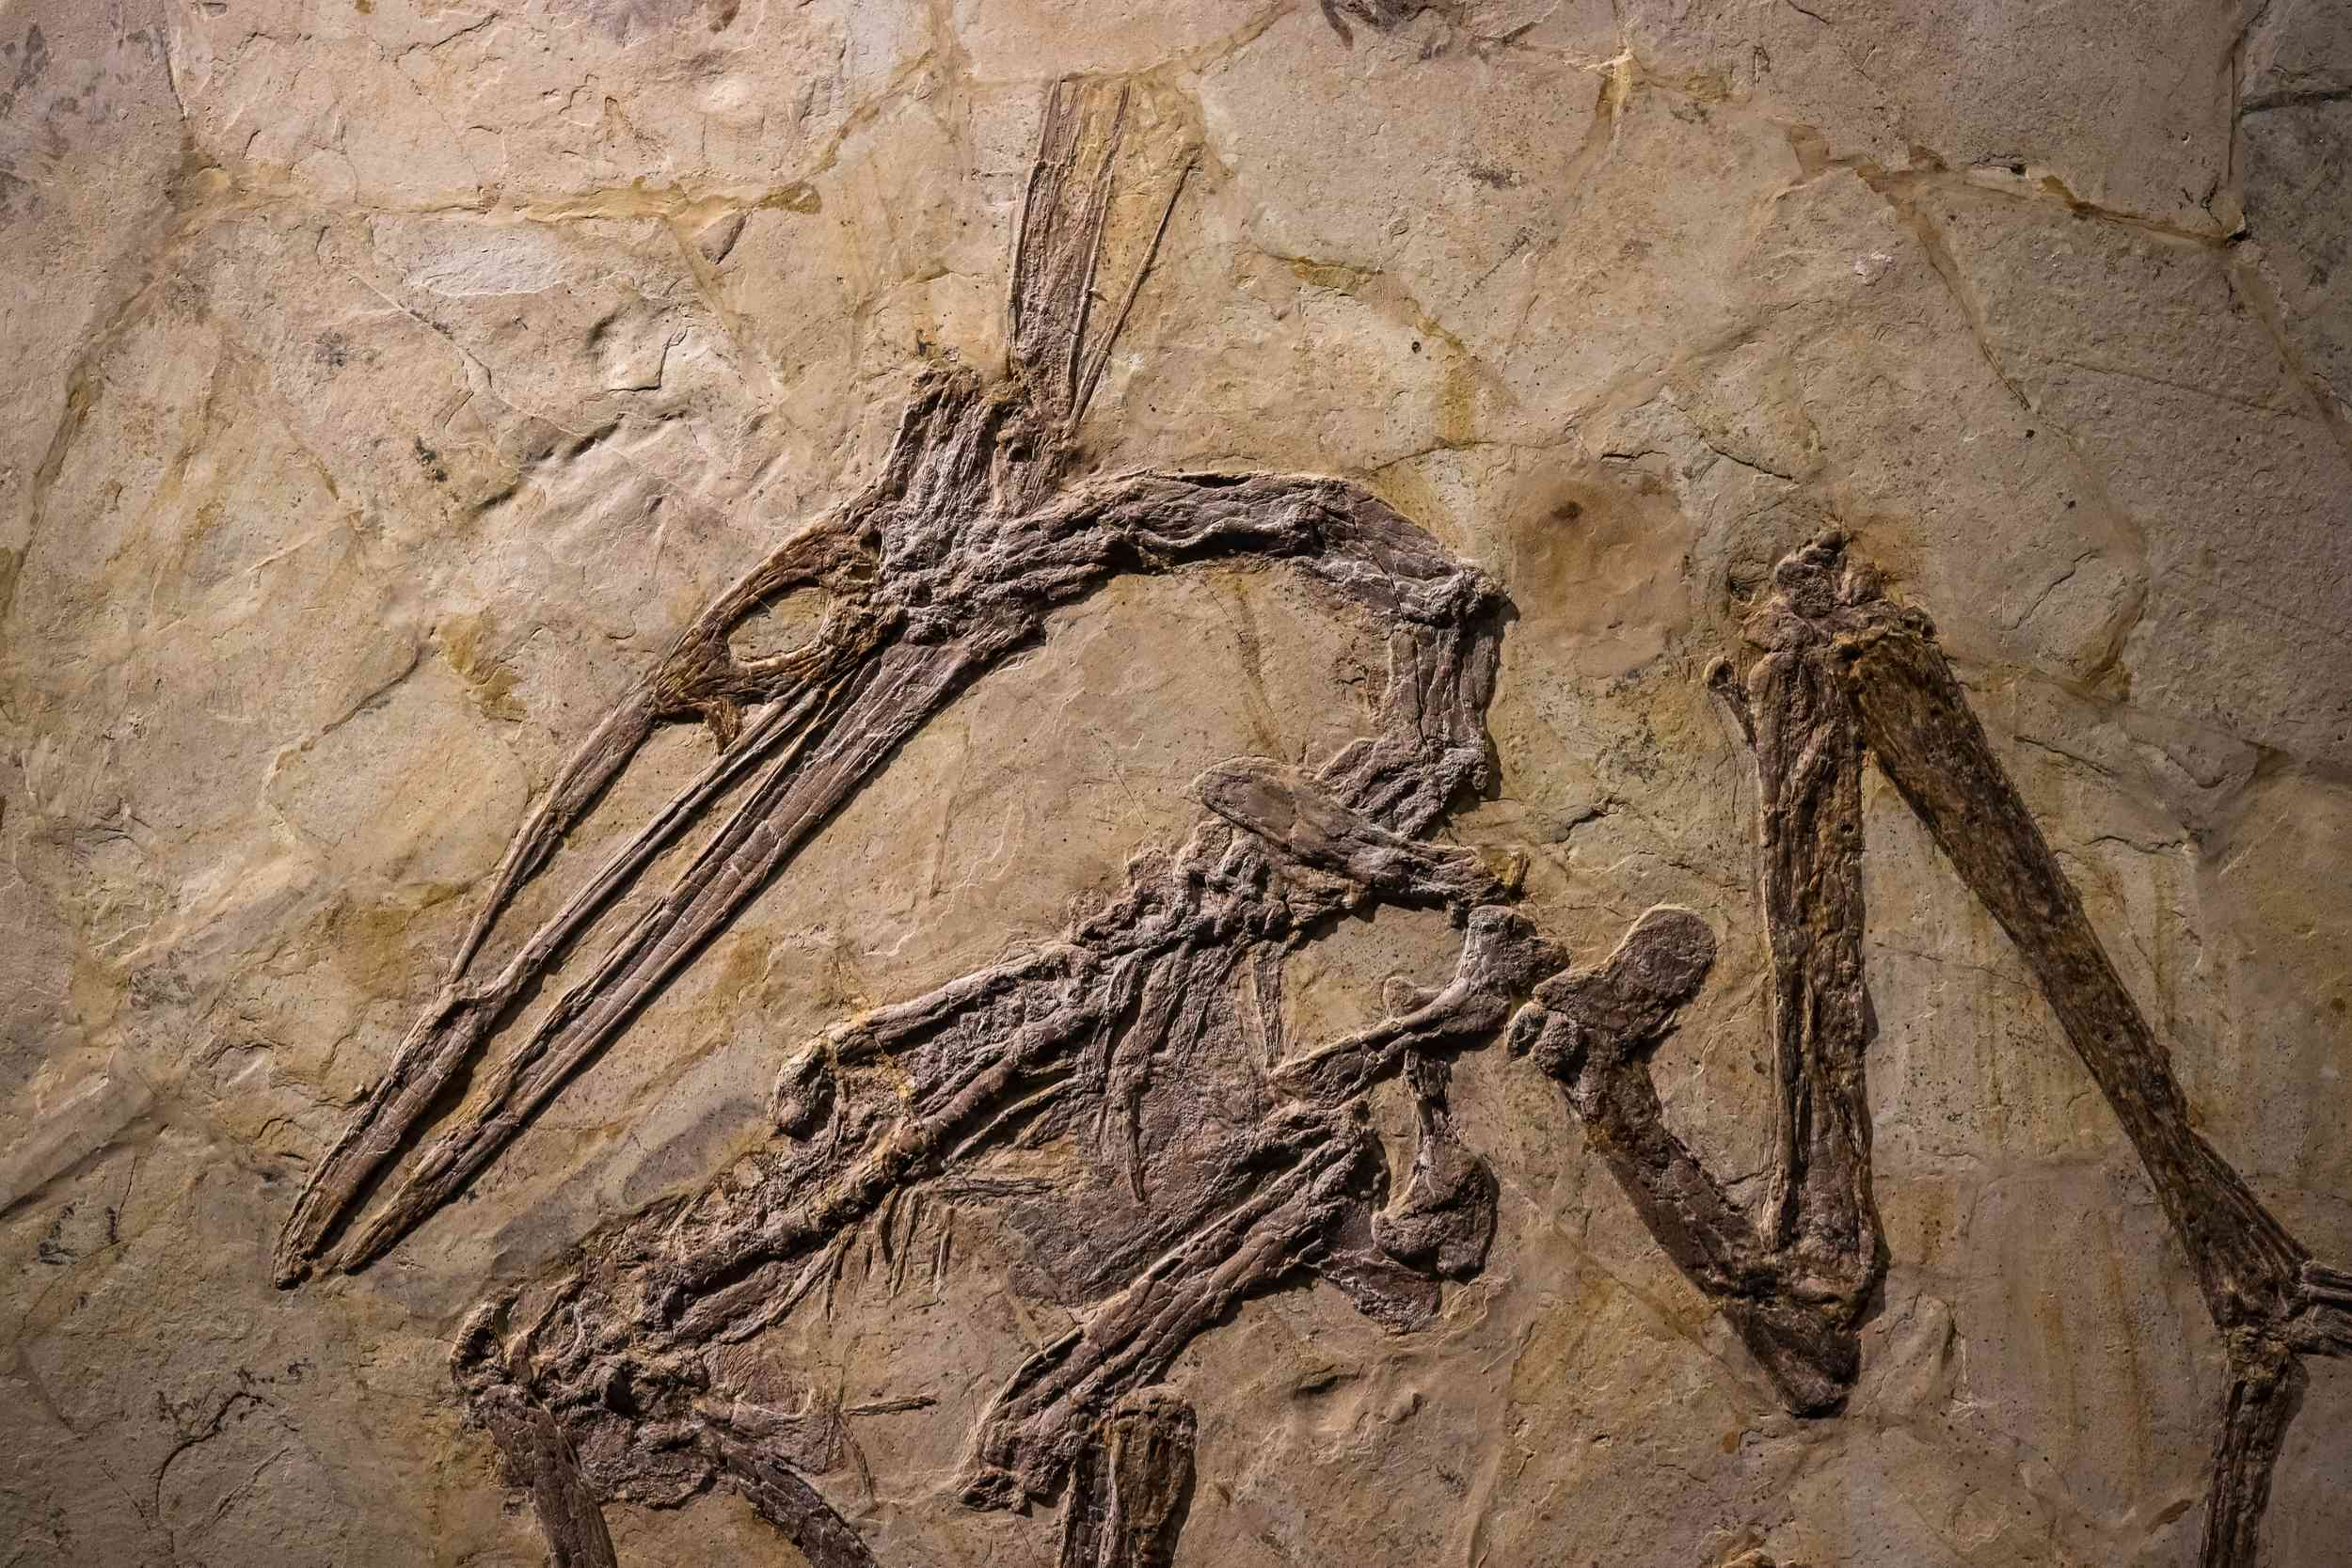 pterosaurs and dinosaurs fossil